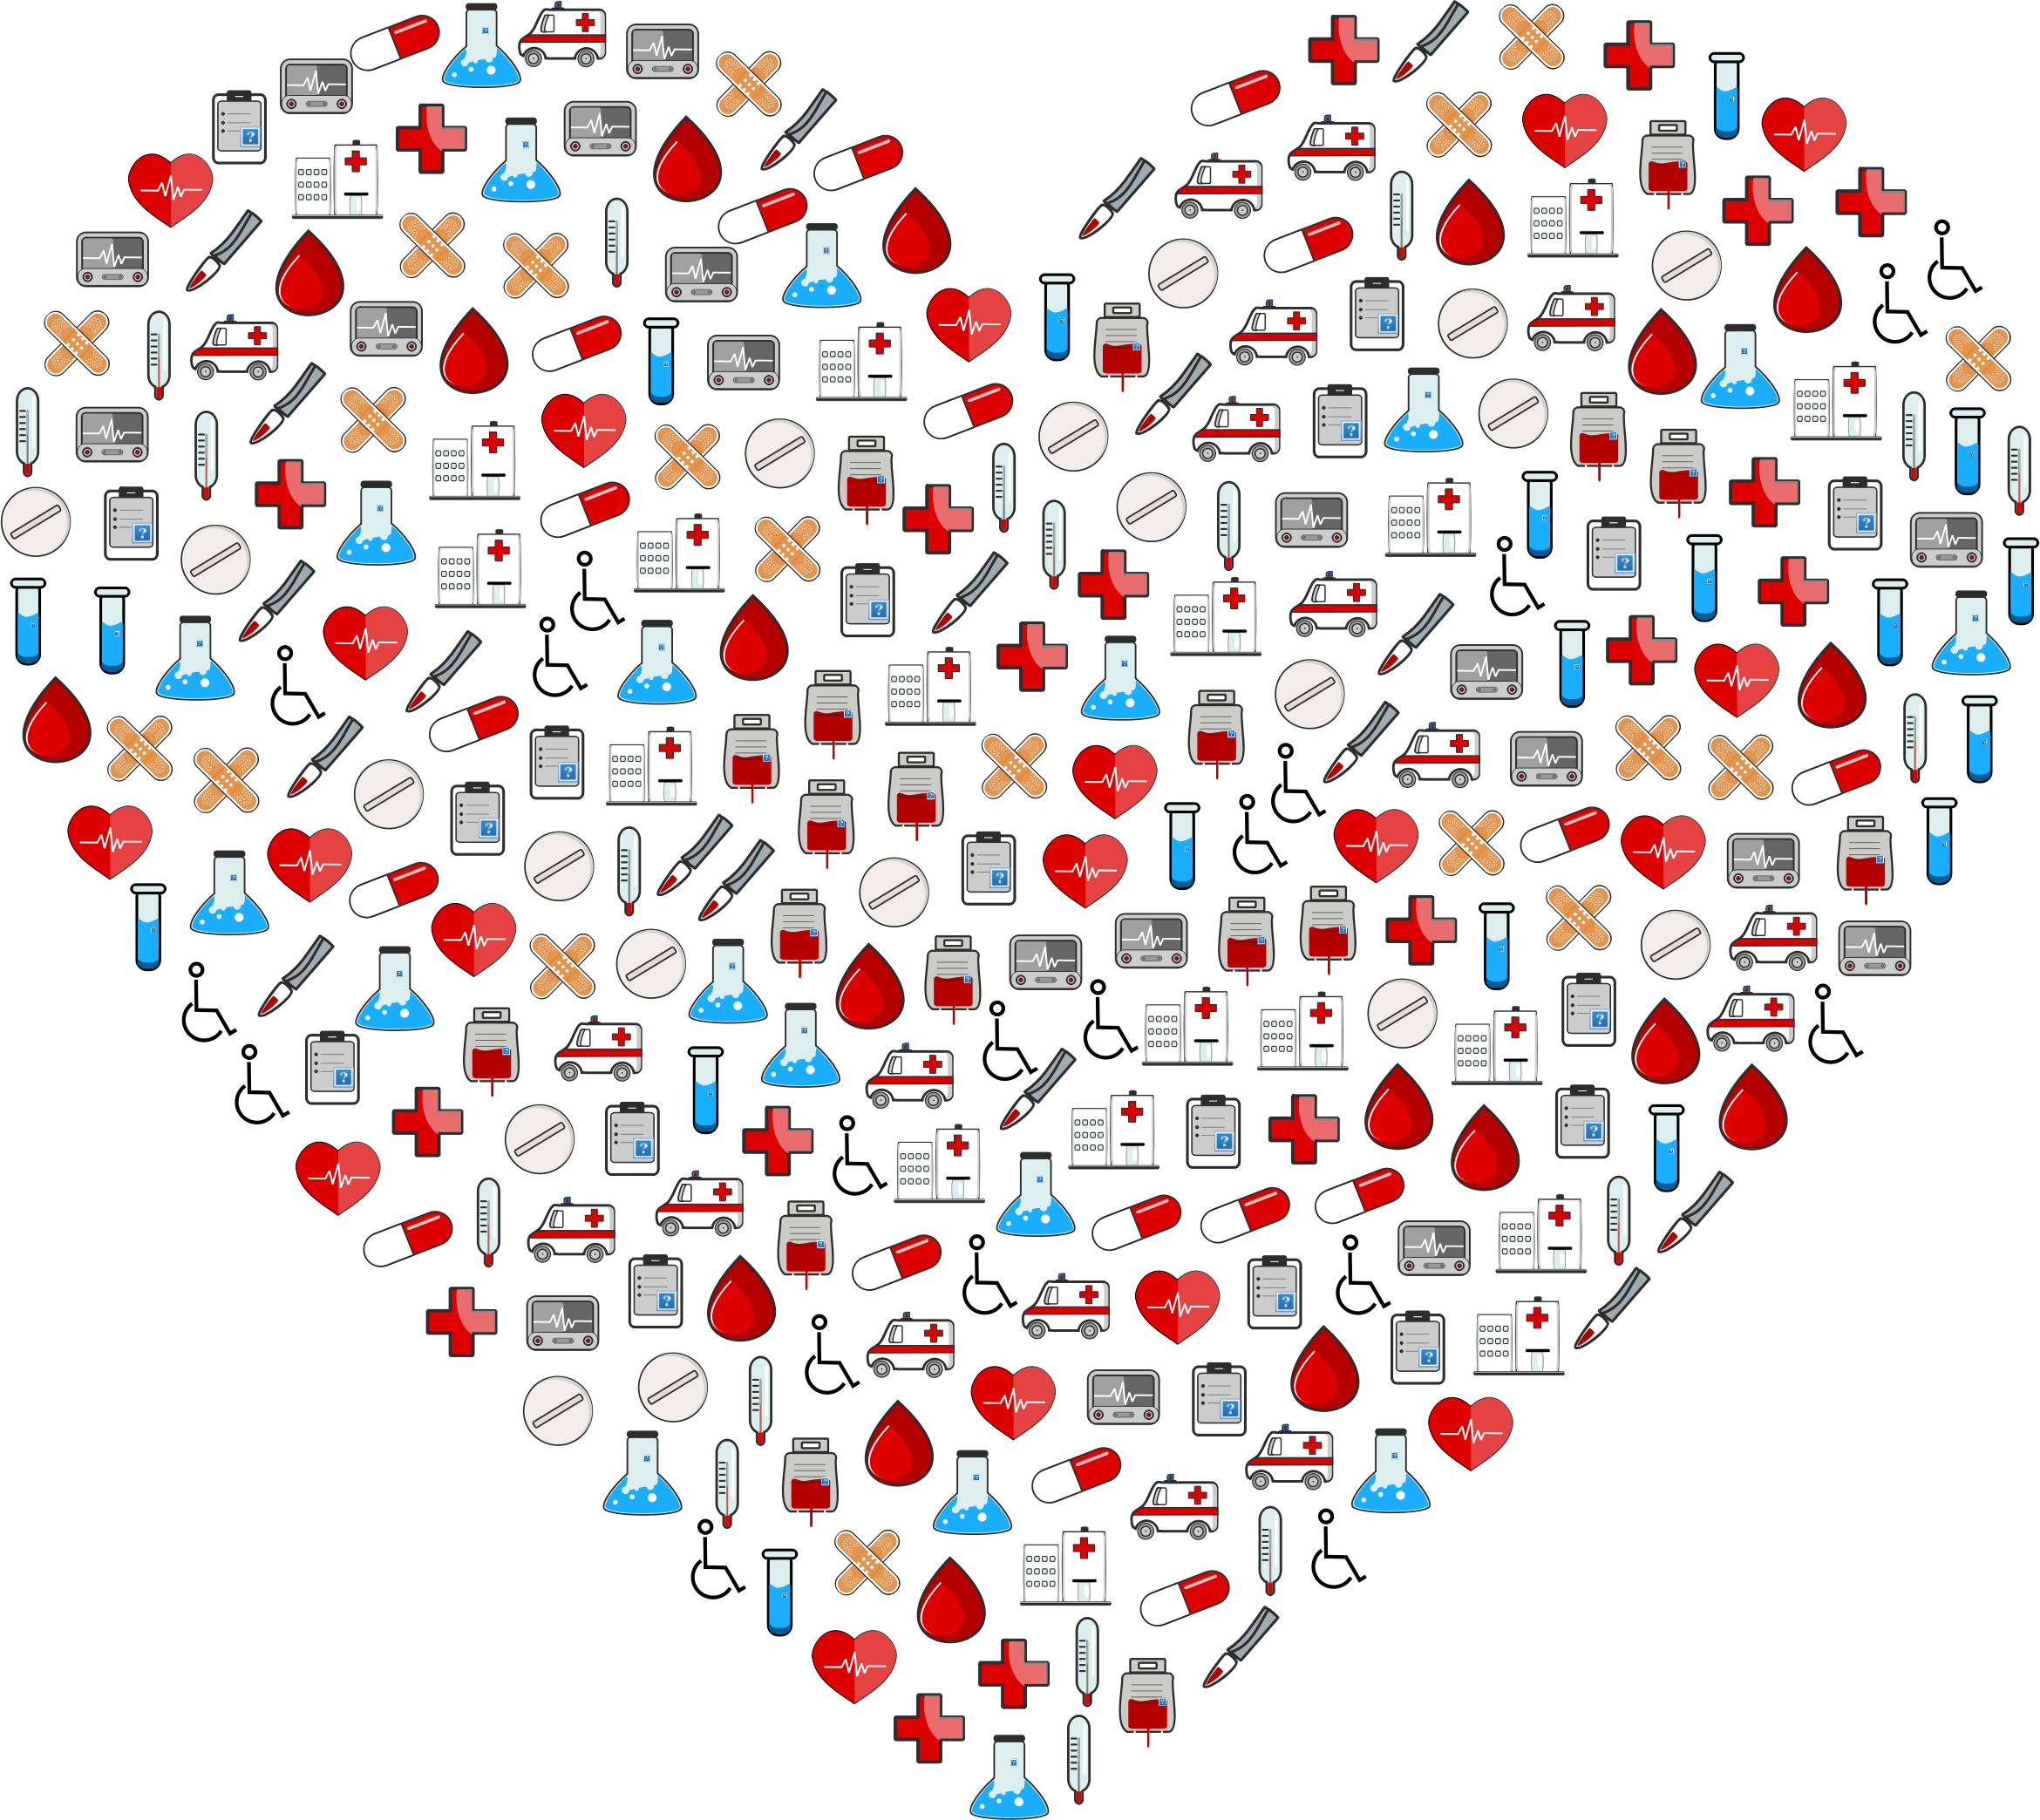 Heartbeat clipart medical. Icons heart big image